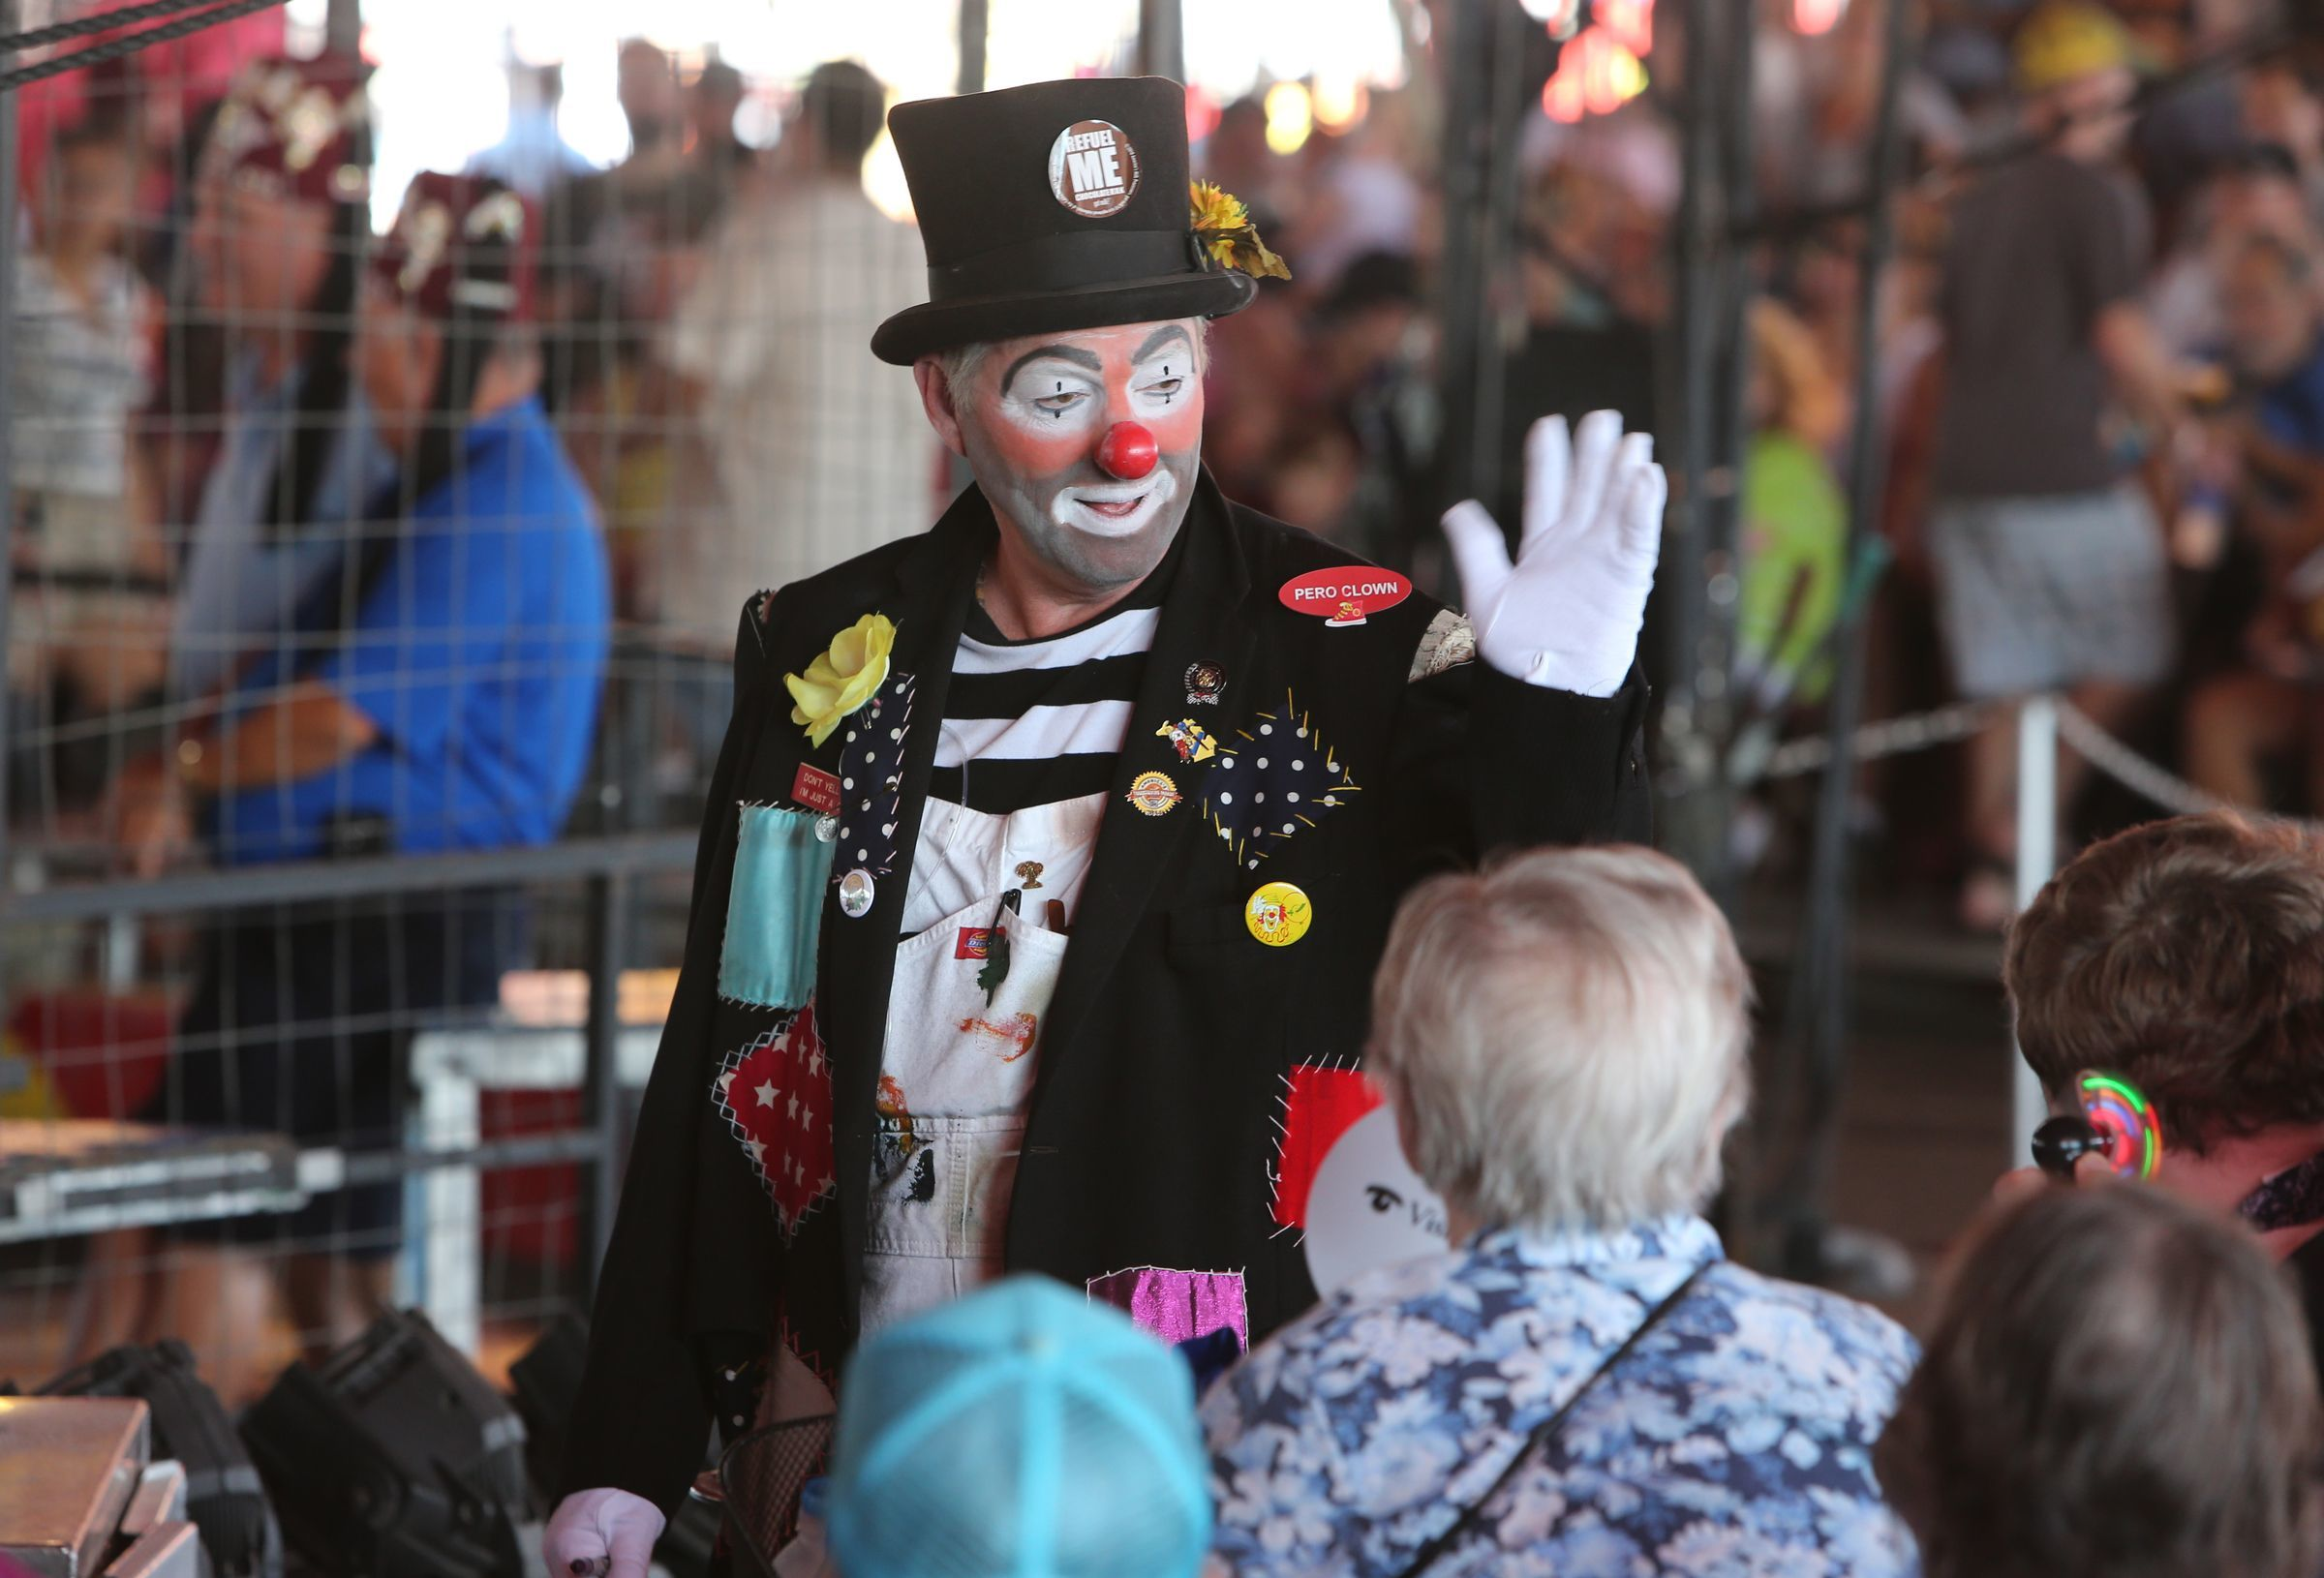 The Shrine Circus will again be part of the Michigan State Fair.